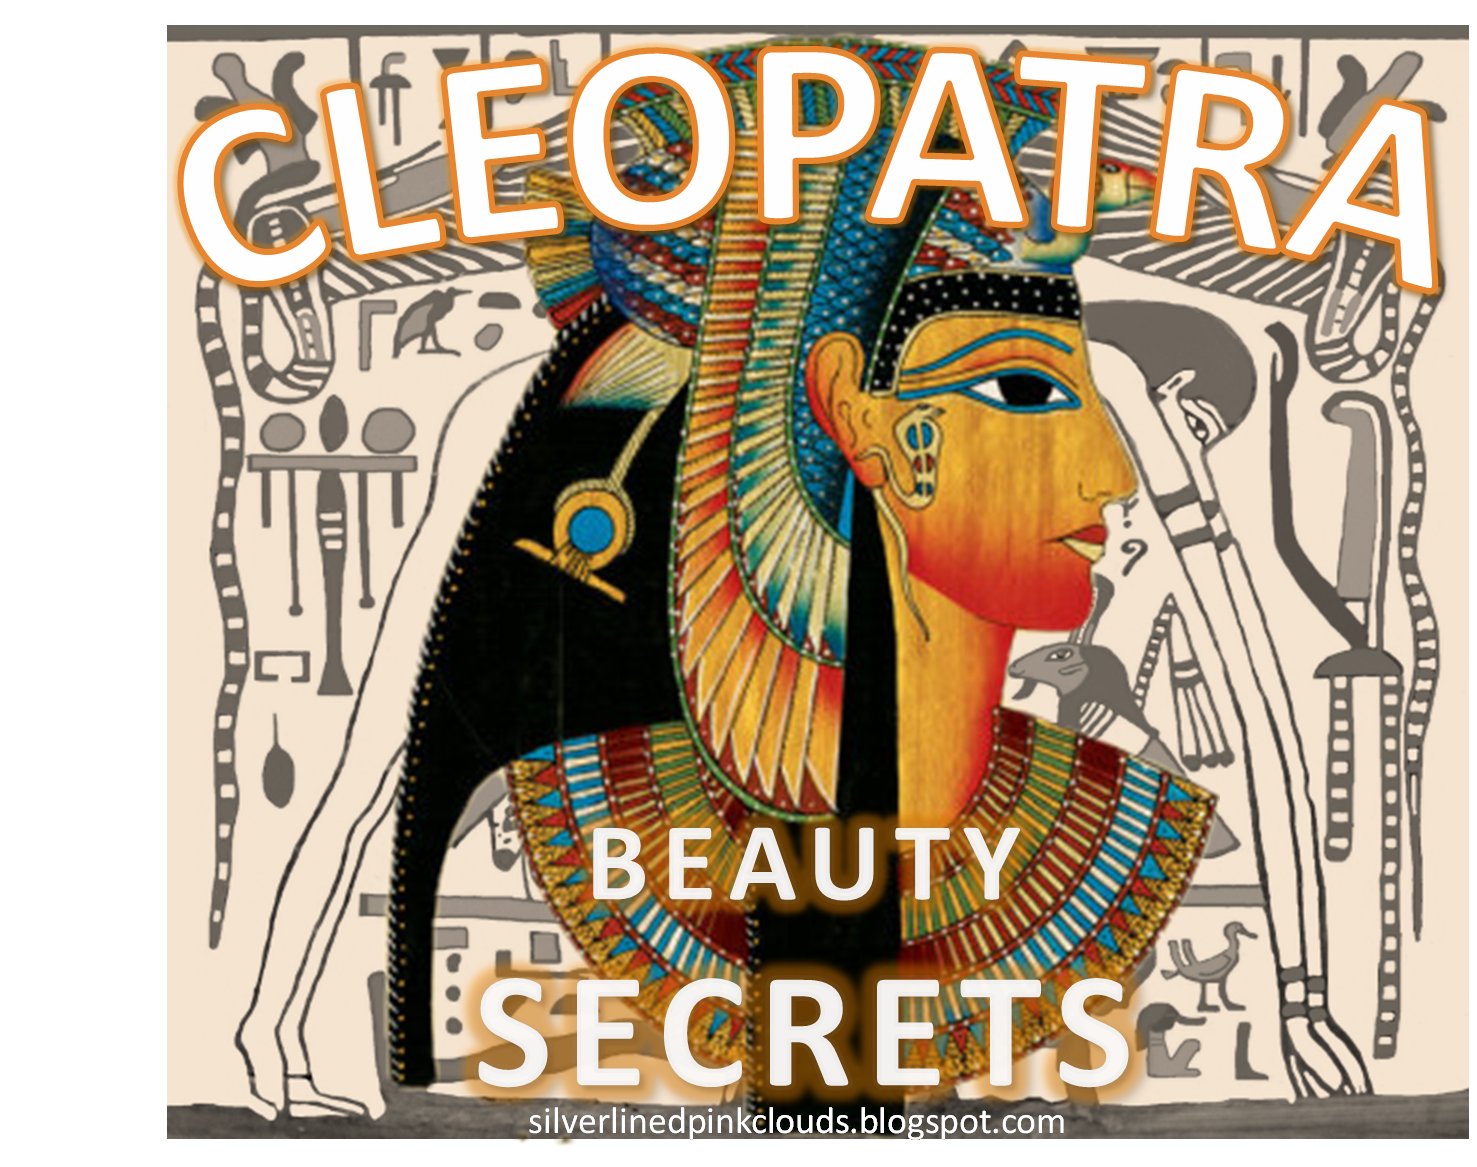 beauty secrets from ancient egypt 10 dangerous beauty tricks from ancient times randy astaiza sep 18, 2012, 6:05 pm  with all these tips to look your best remember that fresh breath and a great smile go a long way too.